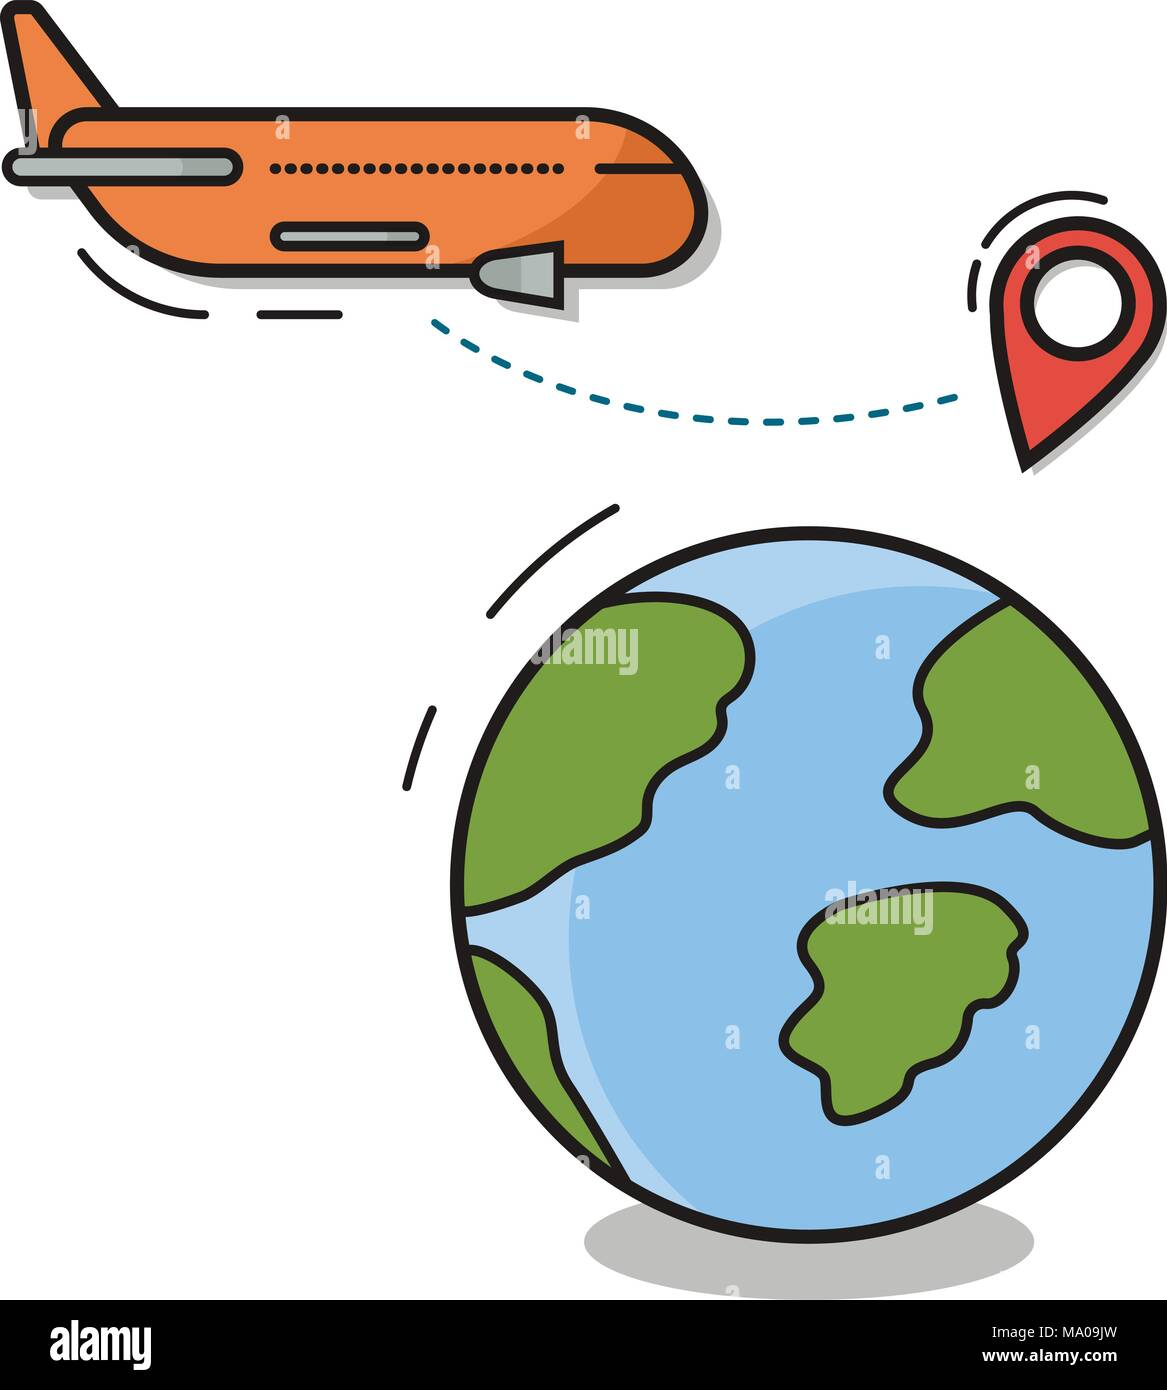 dae5ede4e70 Travel Icon Isolated Plane Fly Over World Globe With Map Pointers Vector  Linear Flat Illustration -